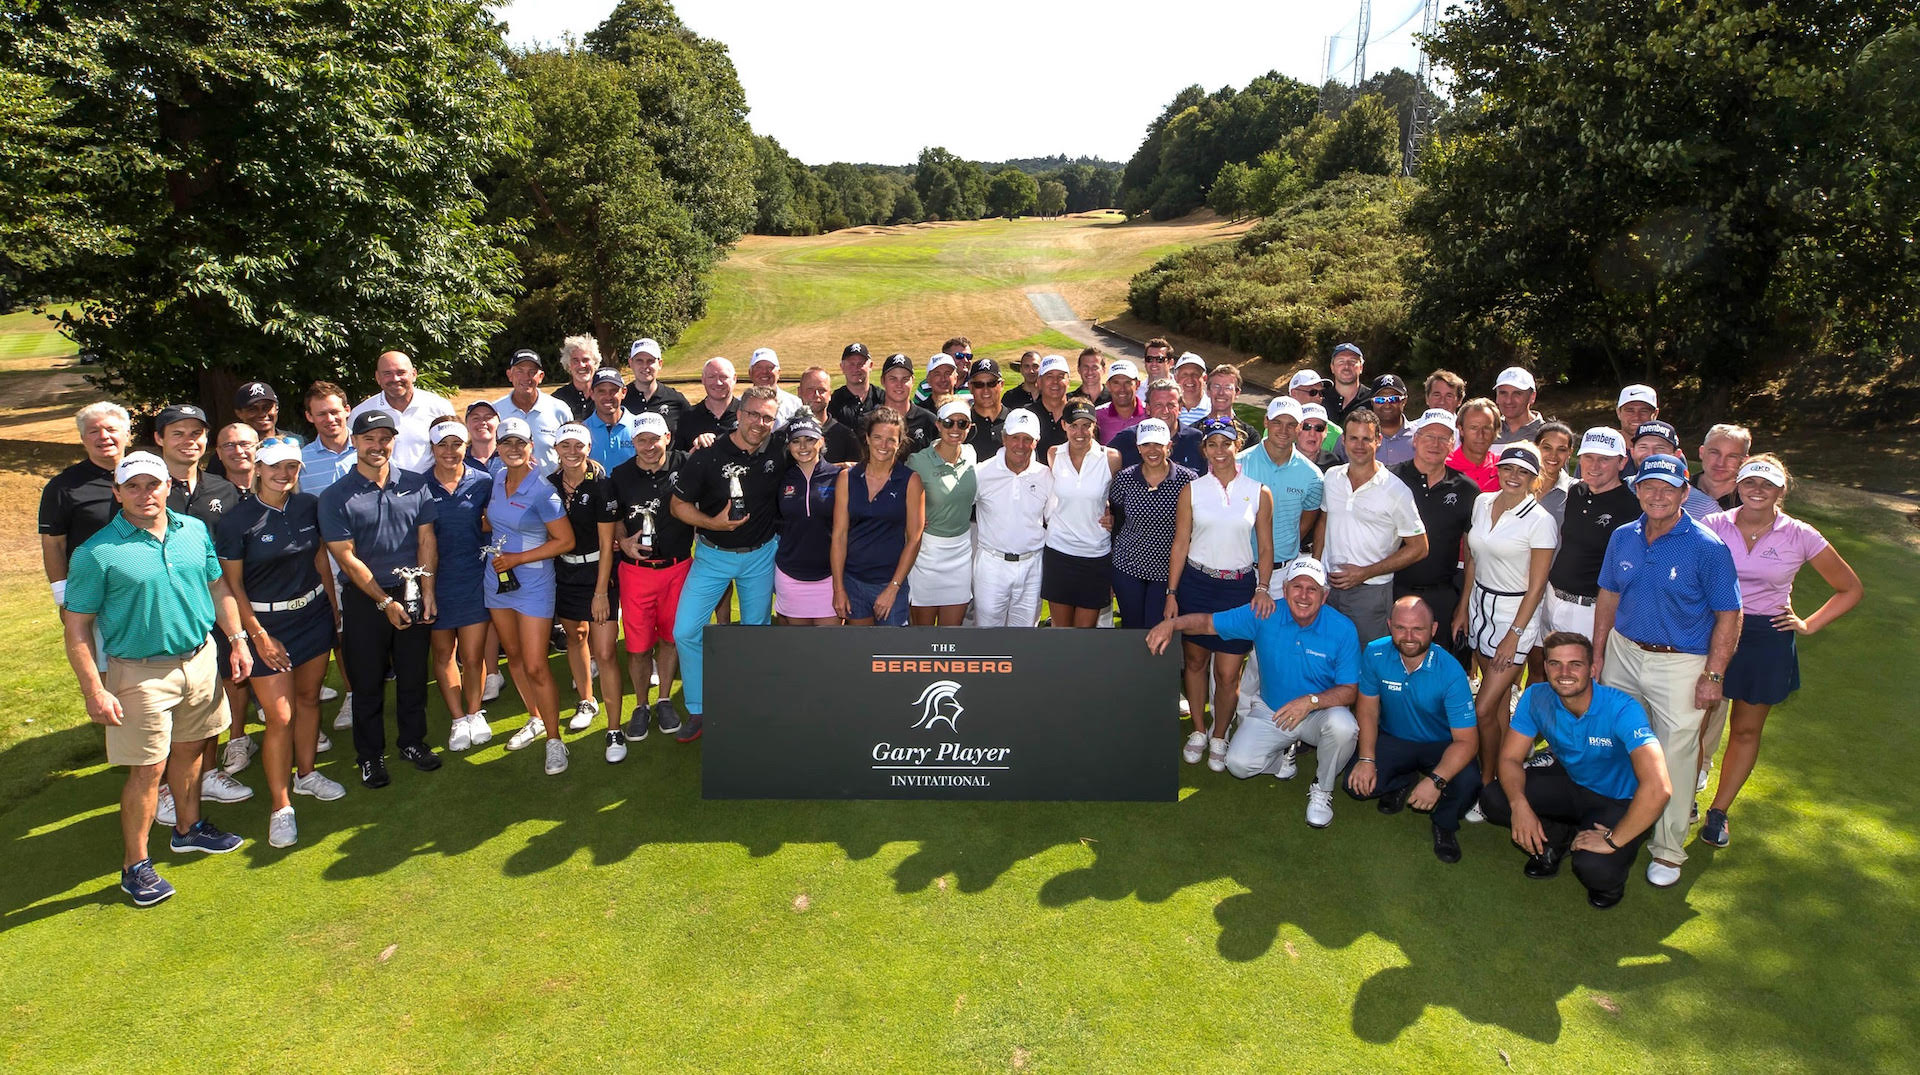 Successful 2018 Berenberg Gary Player Invitational